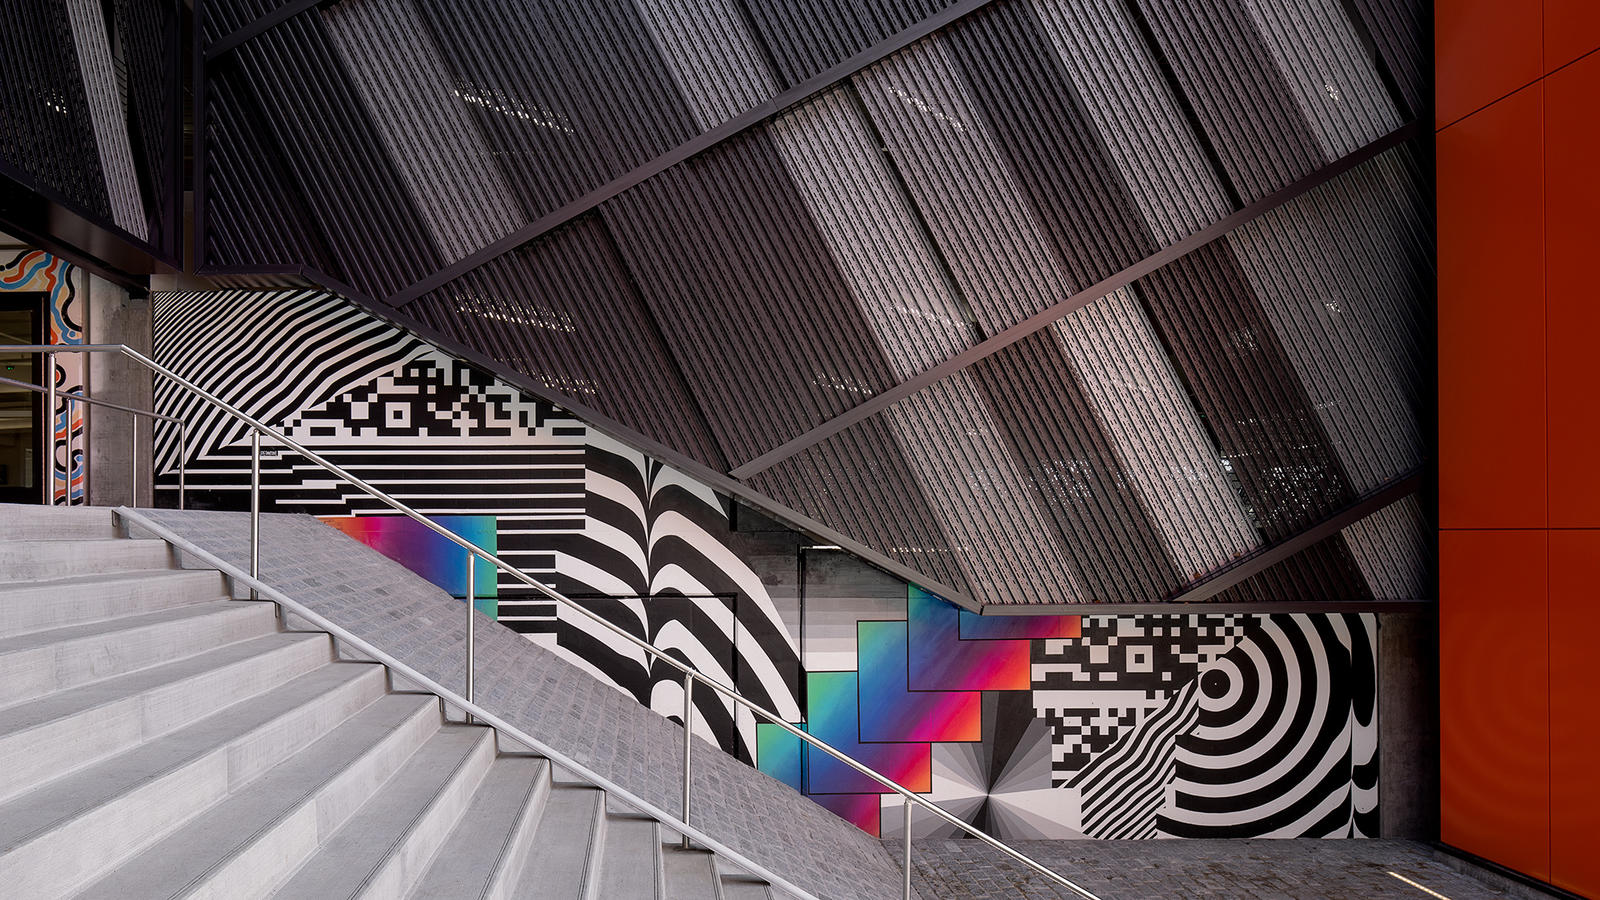 Stash and More Paint Murals for Nike's New NYC Garage 7